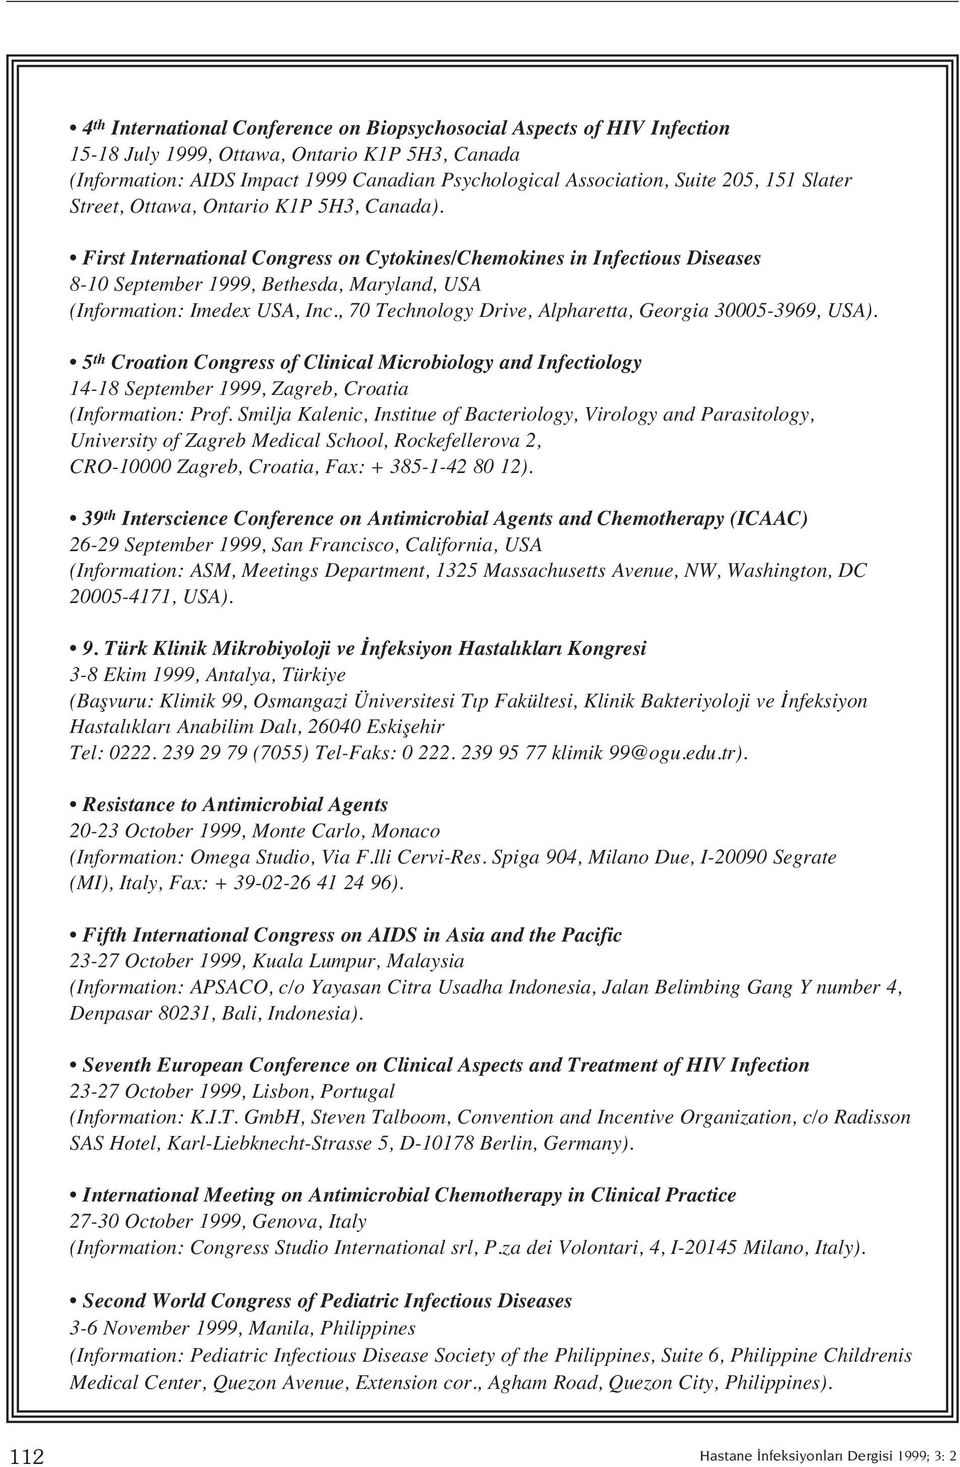 First International Congress on Cytokines/Chemokines in Infectious Diseases 8-10 September 1999, Bethesda, Maryland, USA (Information: Imedex USA, Inc.